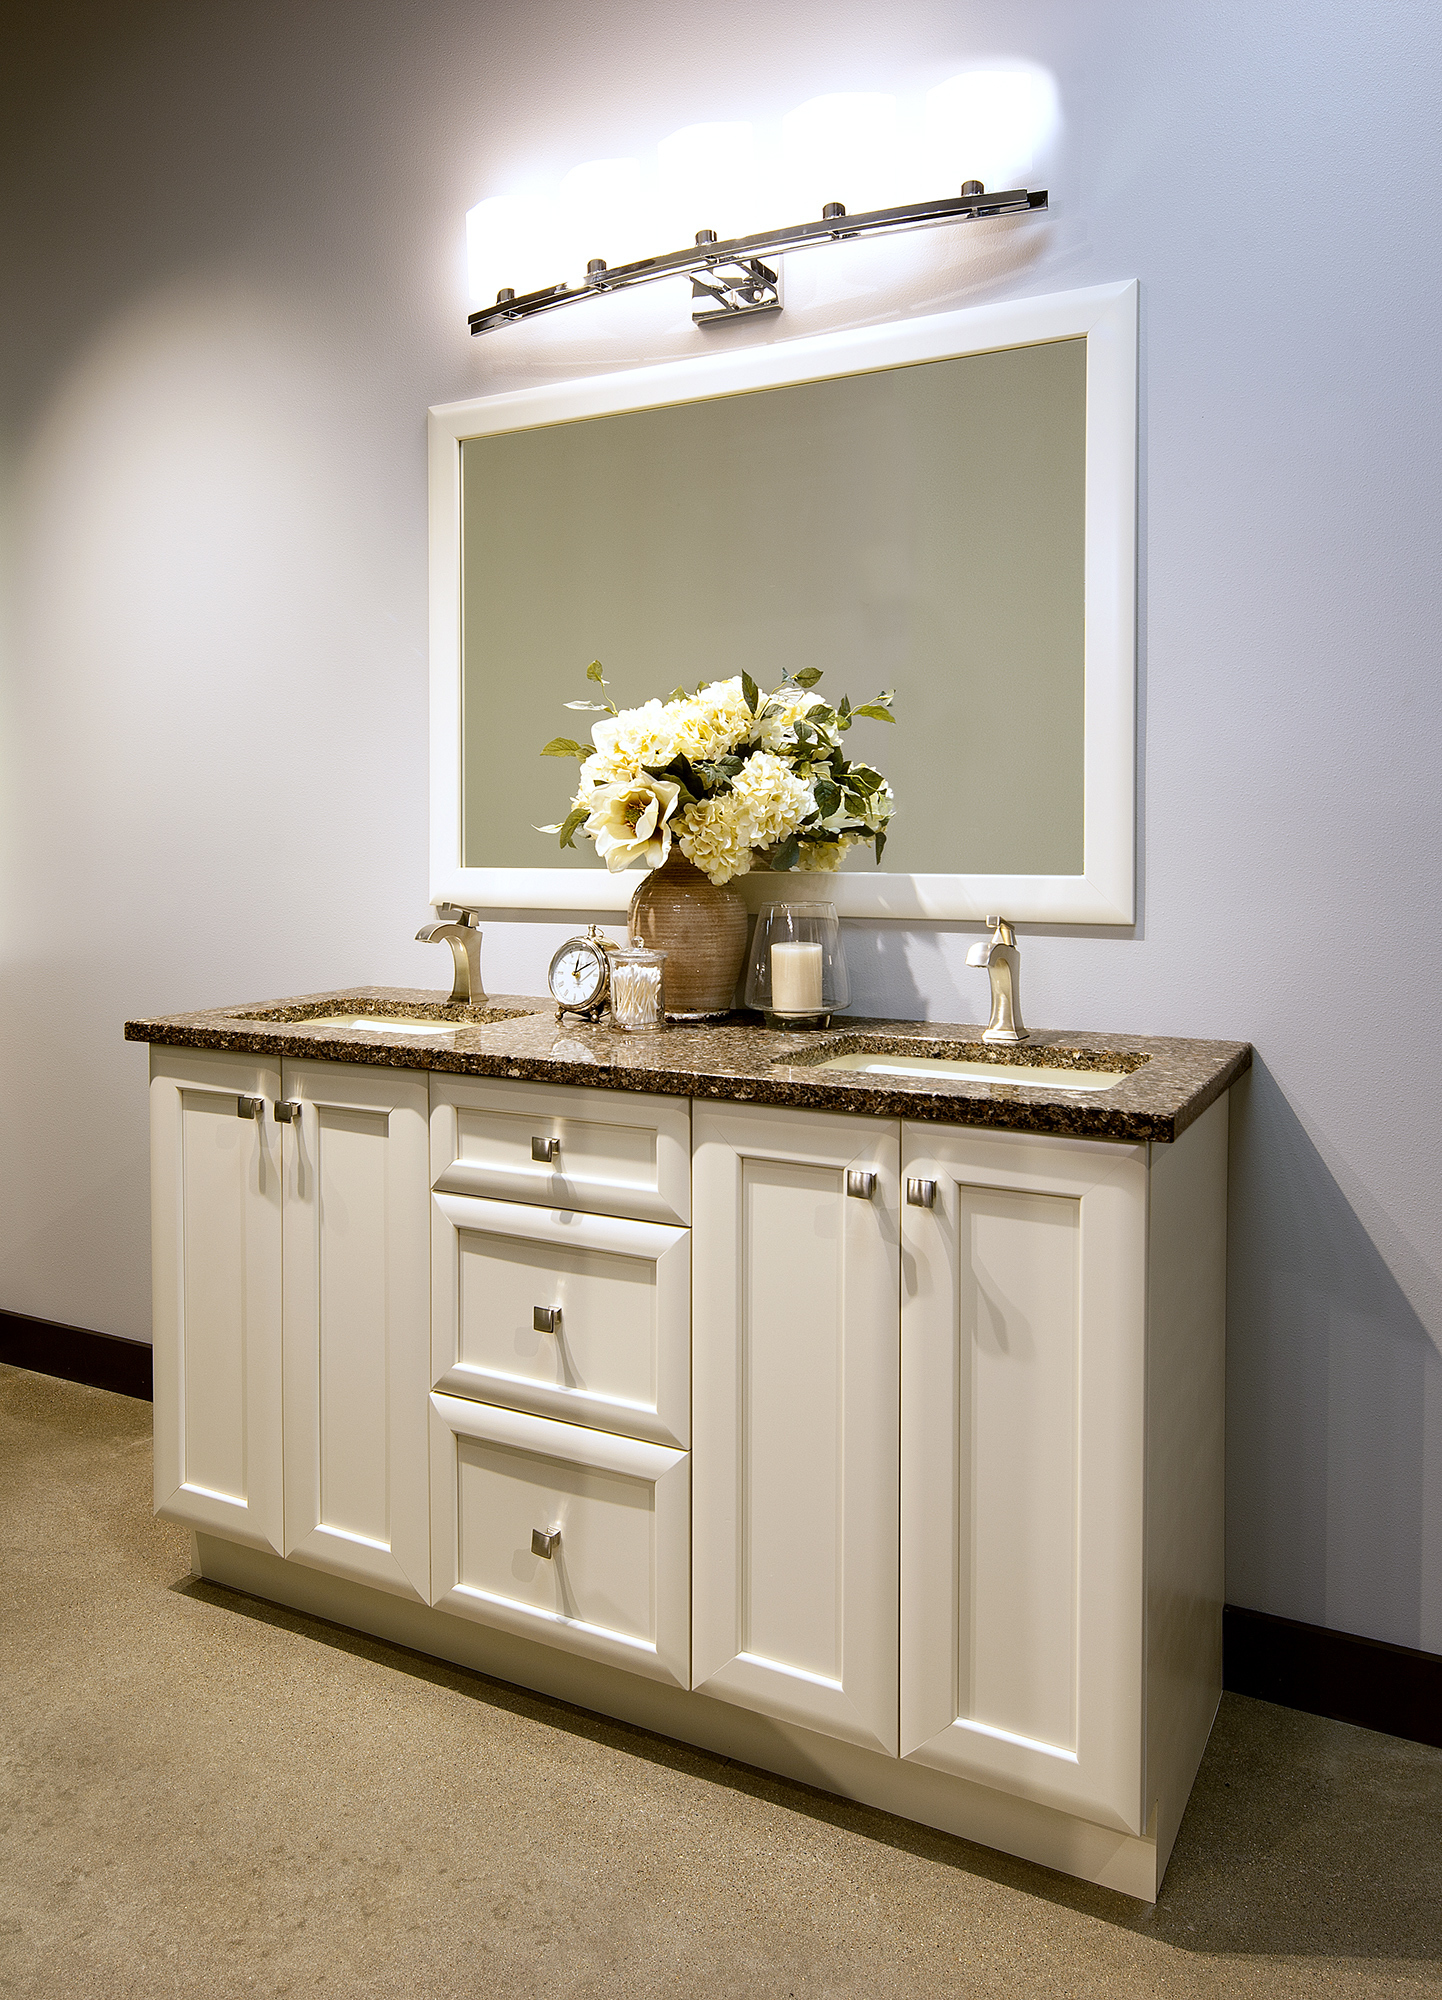 Painted bathroom cabinets in Moderate White by ShowplaceEVO - view 1